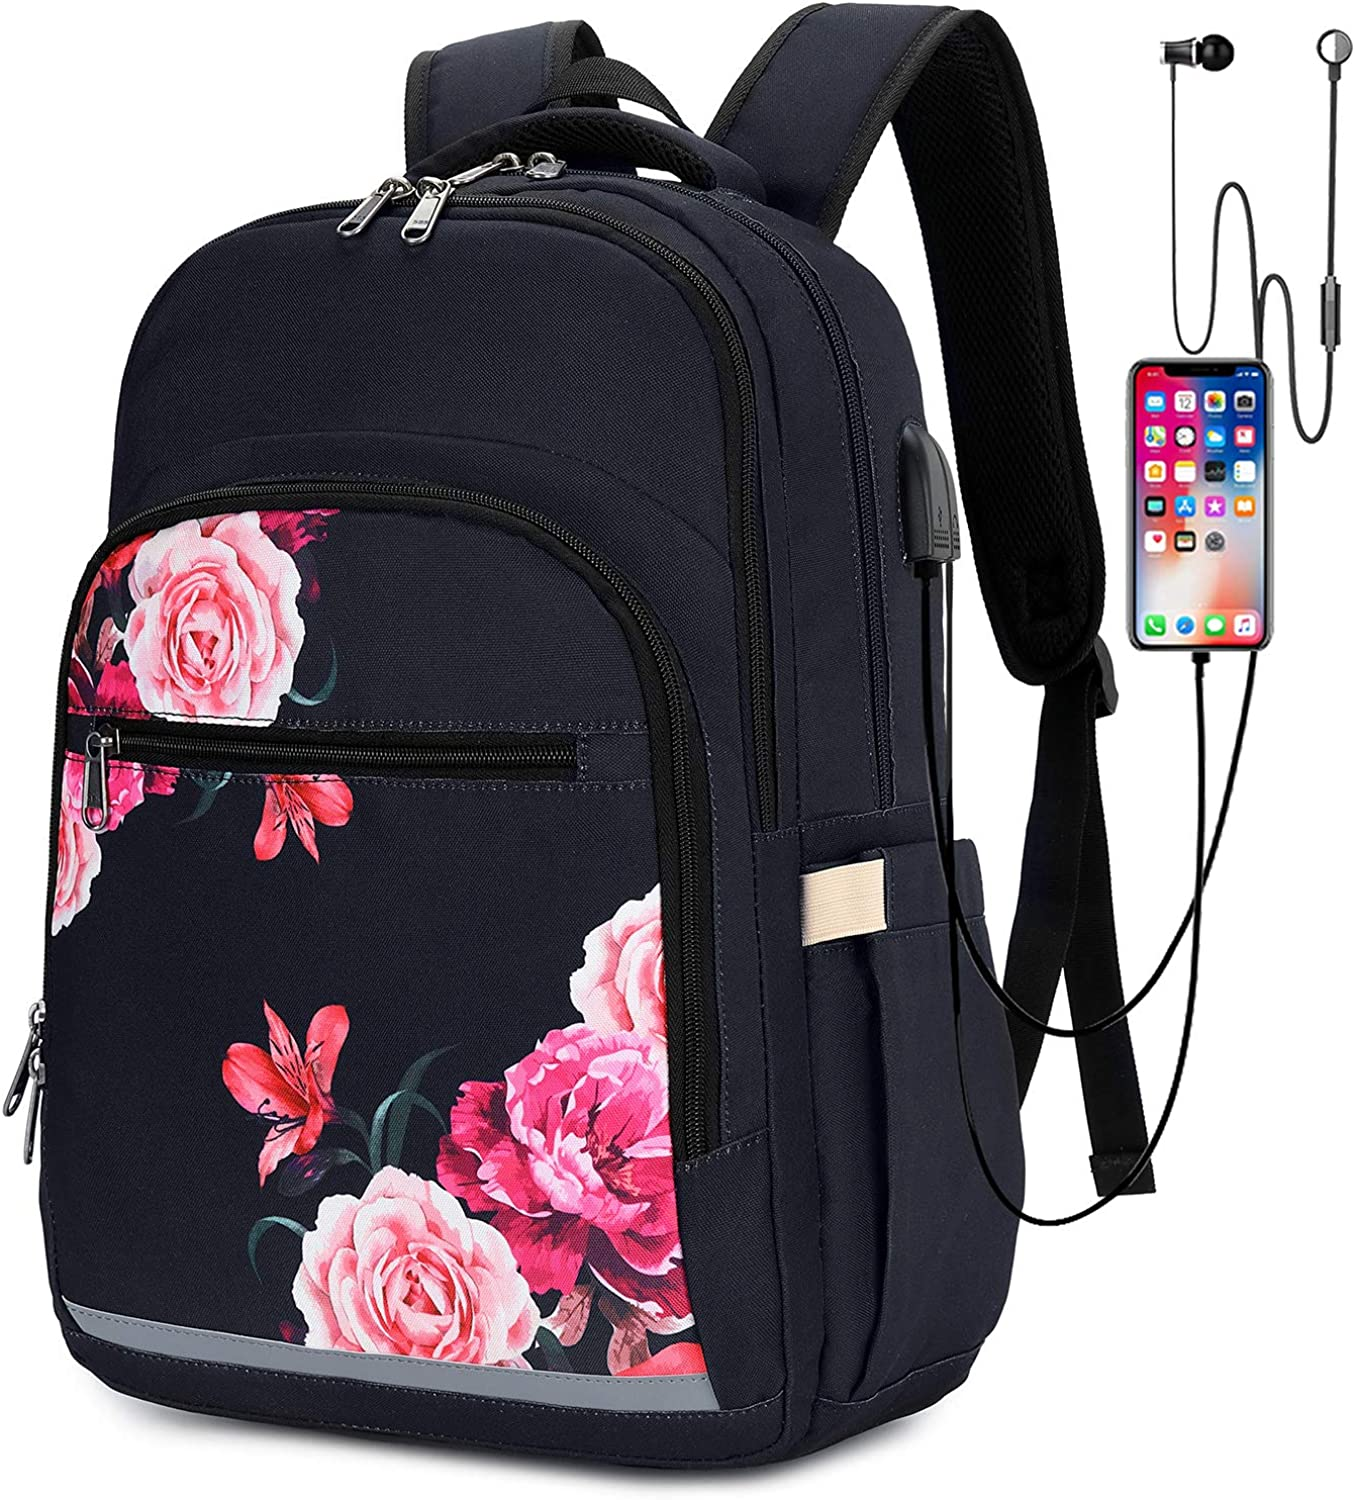 Backpack for Women Men 15 Inch Laptop Bookbag College School Bag with USB Port